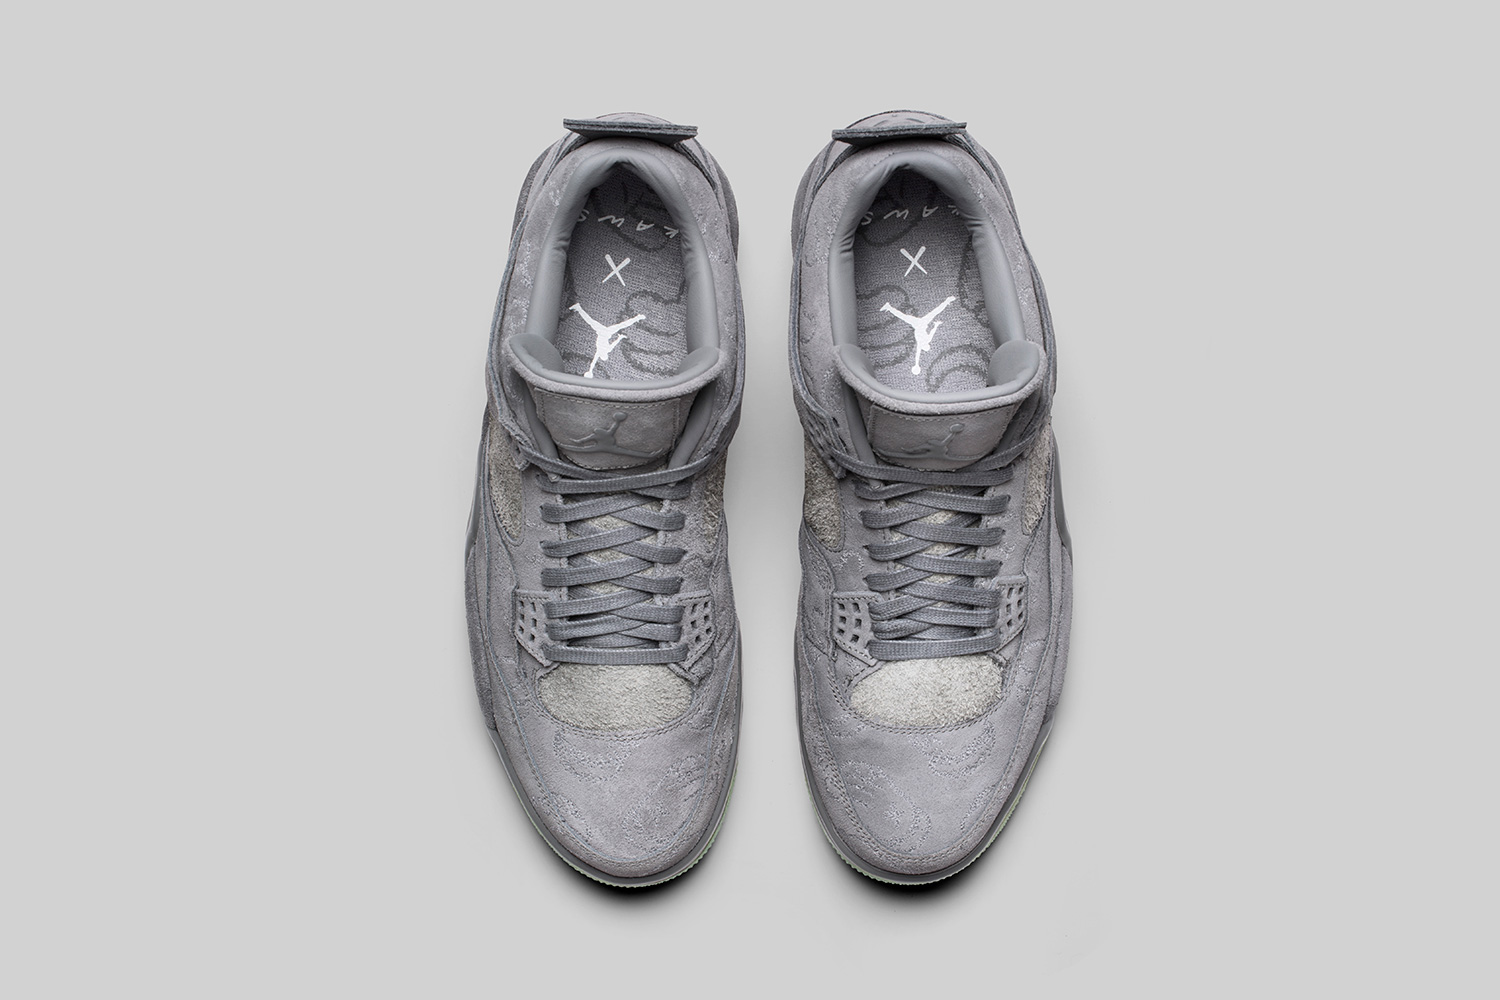 kaws-air-jordan-4-official-images-04